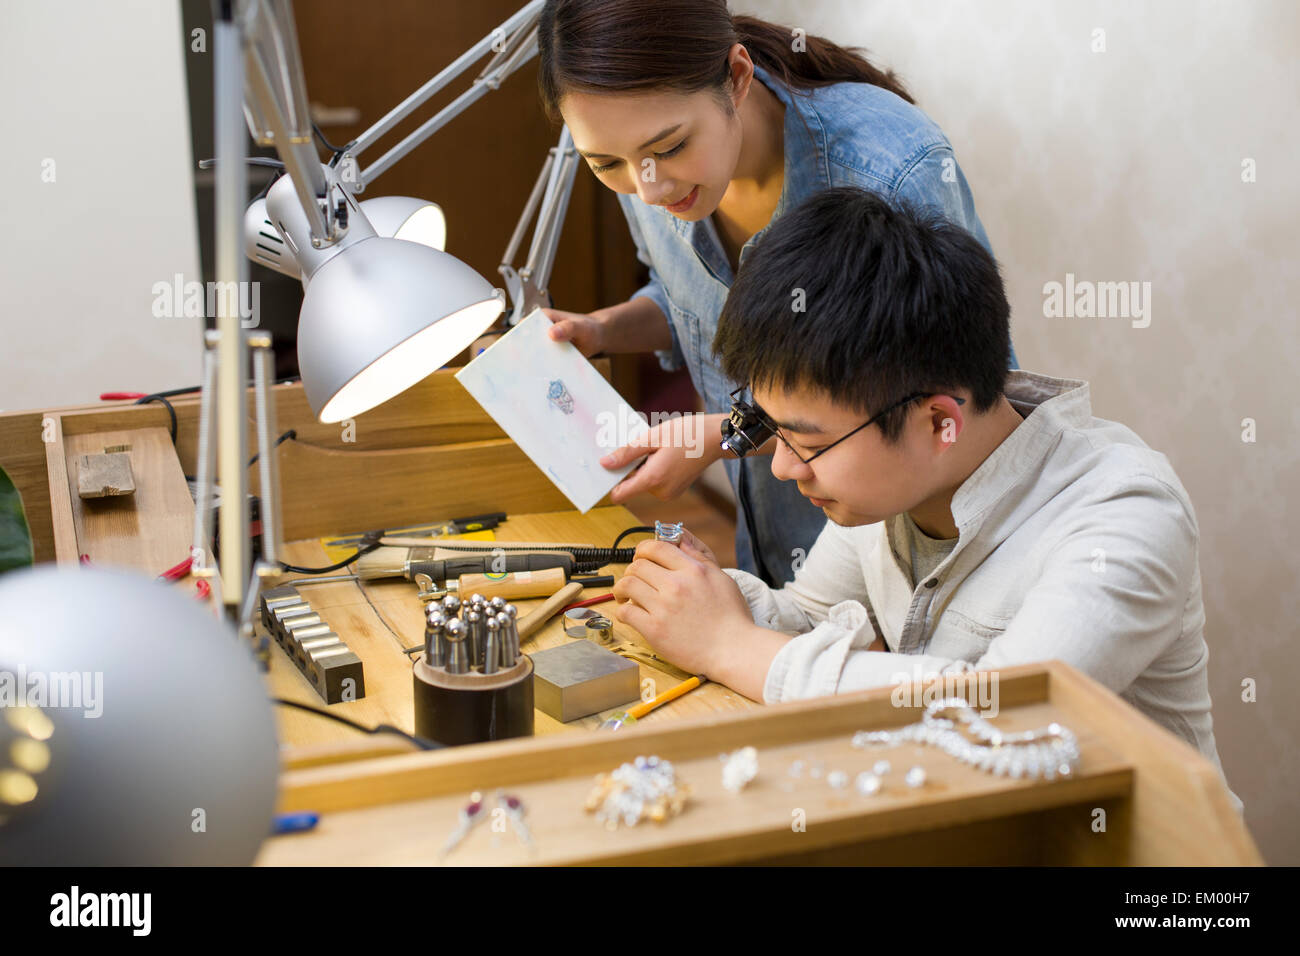 Jewelers making a sapphire ring - Stock Image